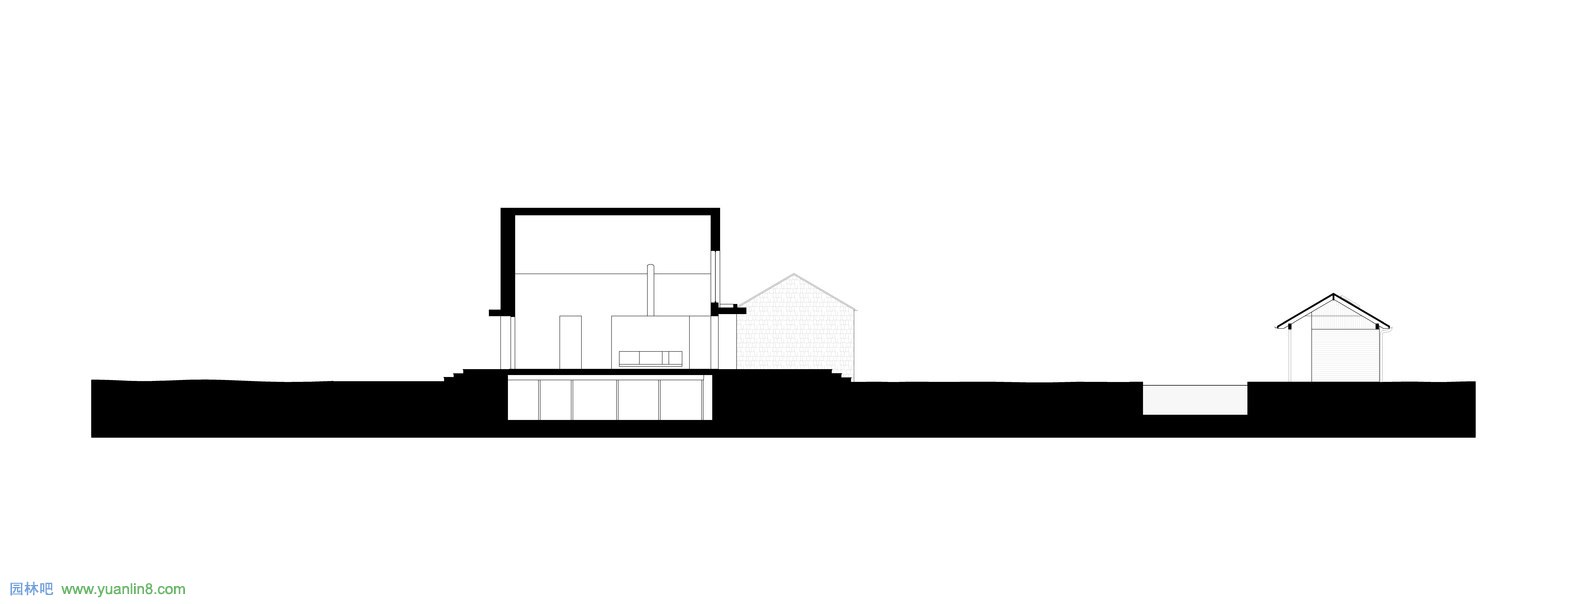 Mitchell_Lane_House_-_Section_2